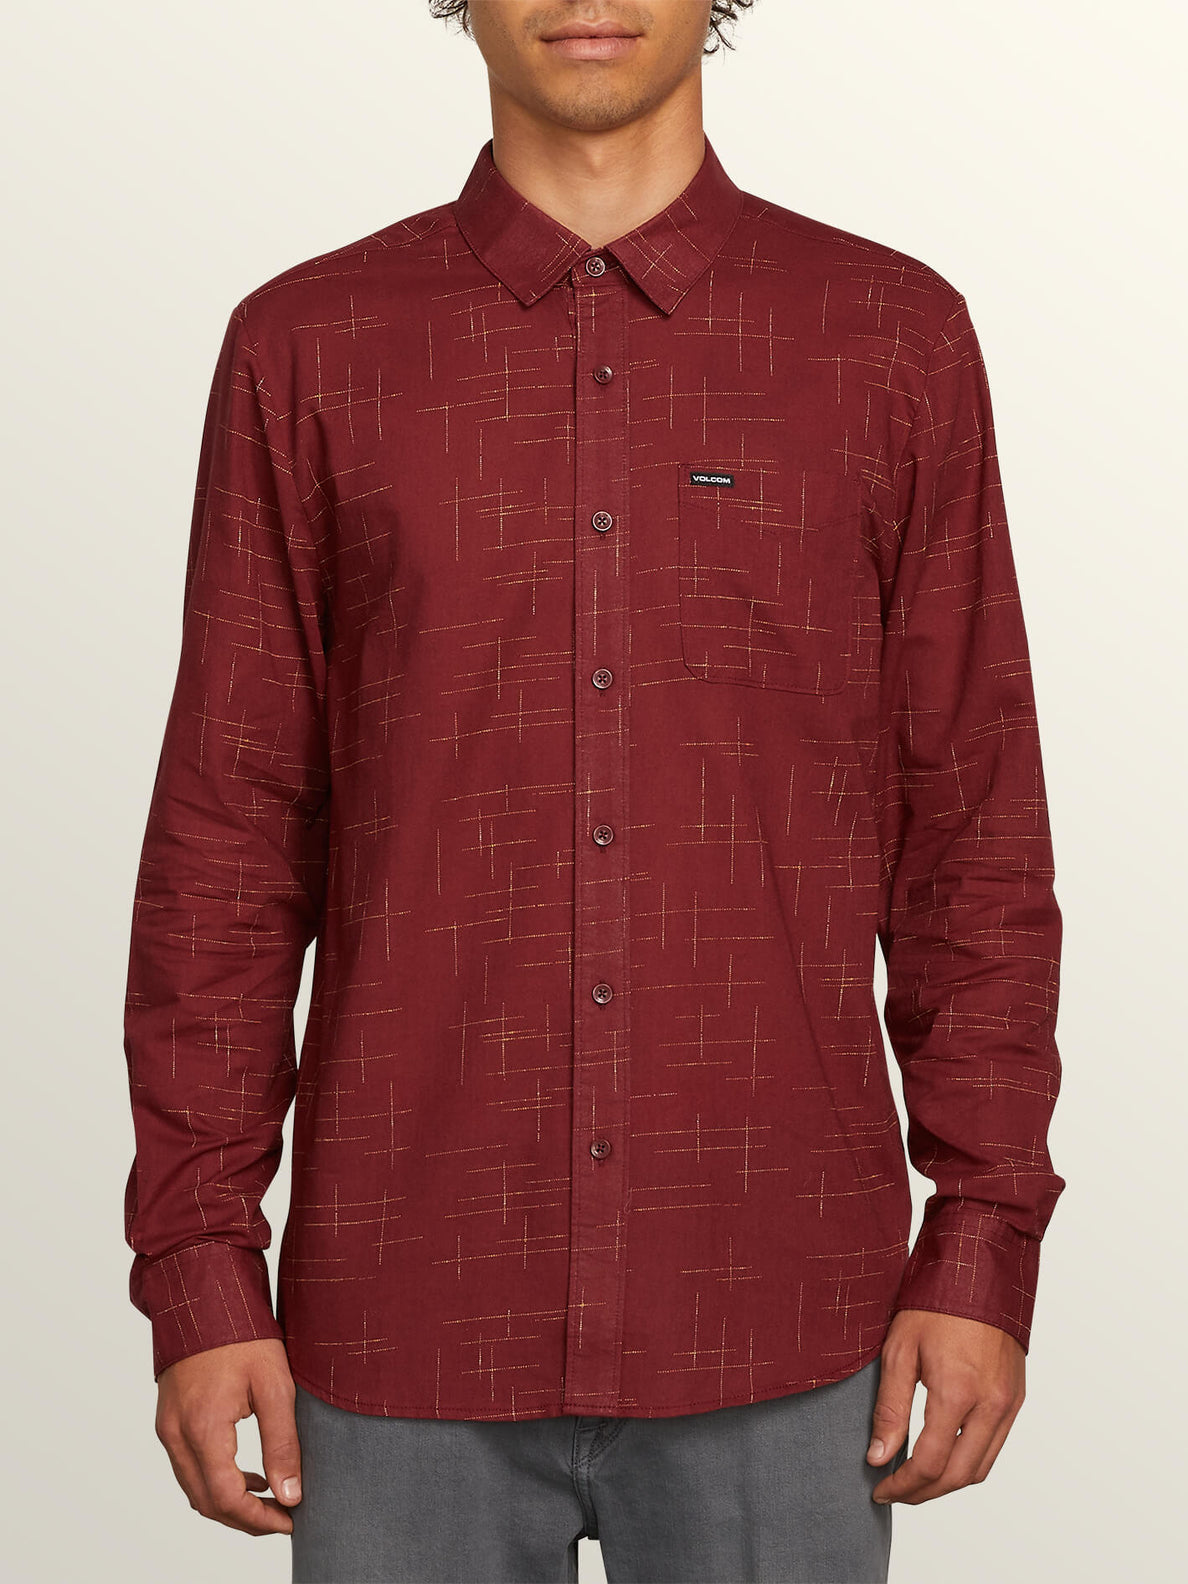 Quency Dot Long Sleeve Shirt In Floyd Red, Front View